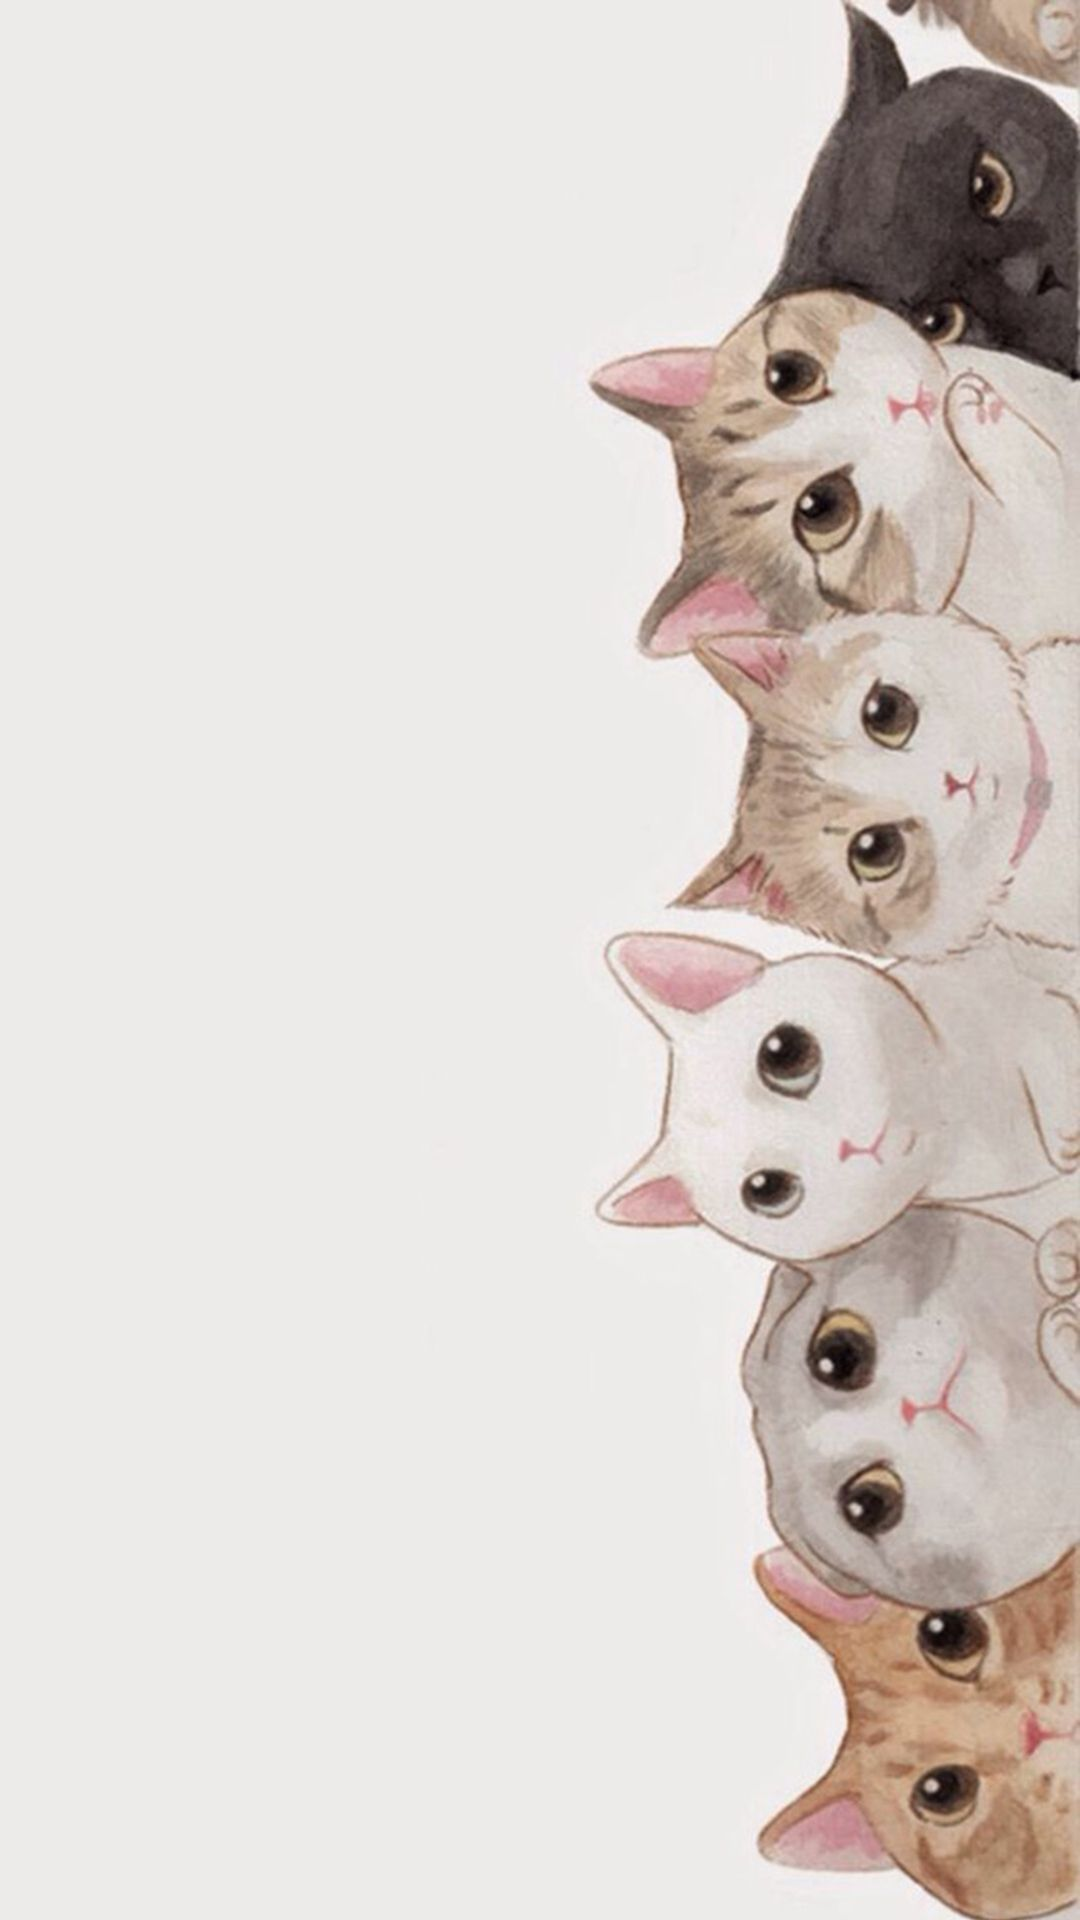 Cute Cats Vertical Aligned Illustration Iphone 8 Wallpapers Cute Wallpapers Cat Art Cat Wallpaper